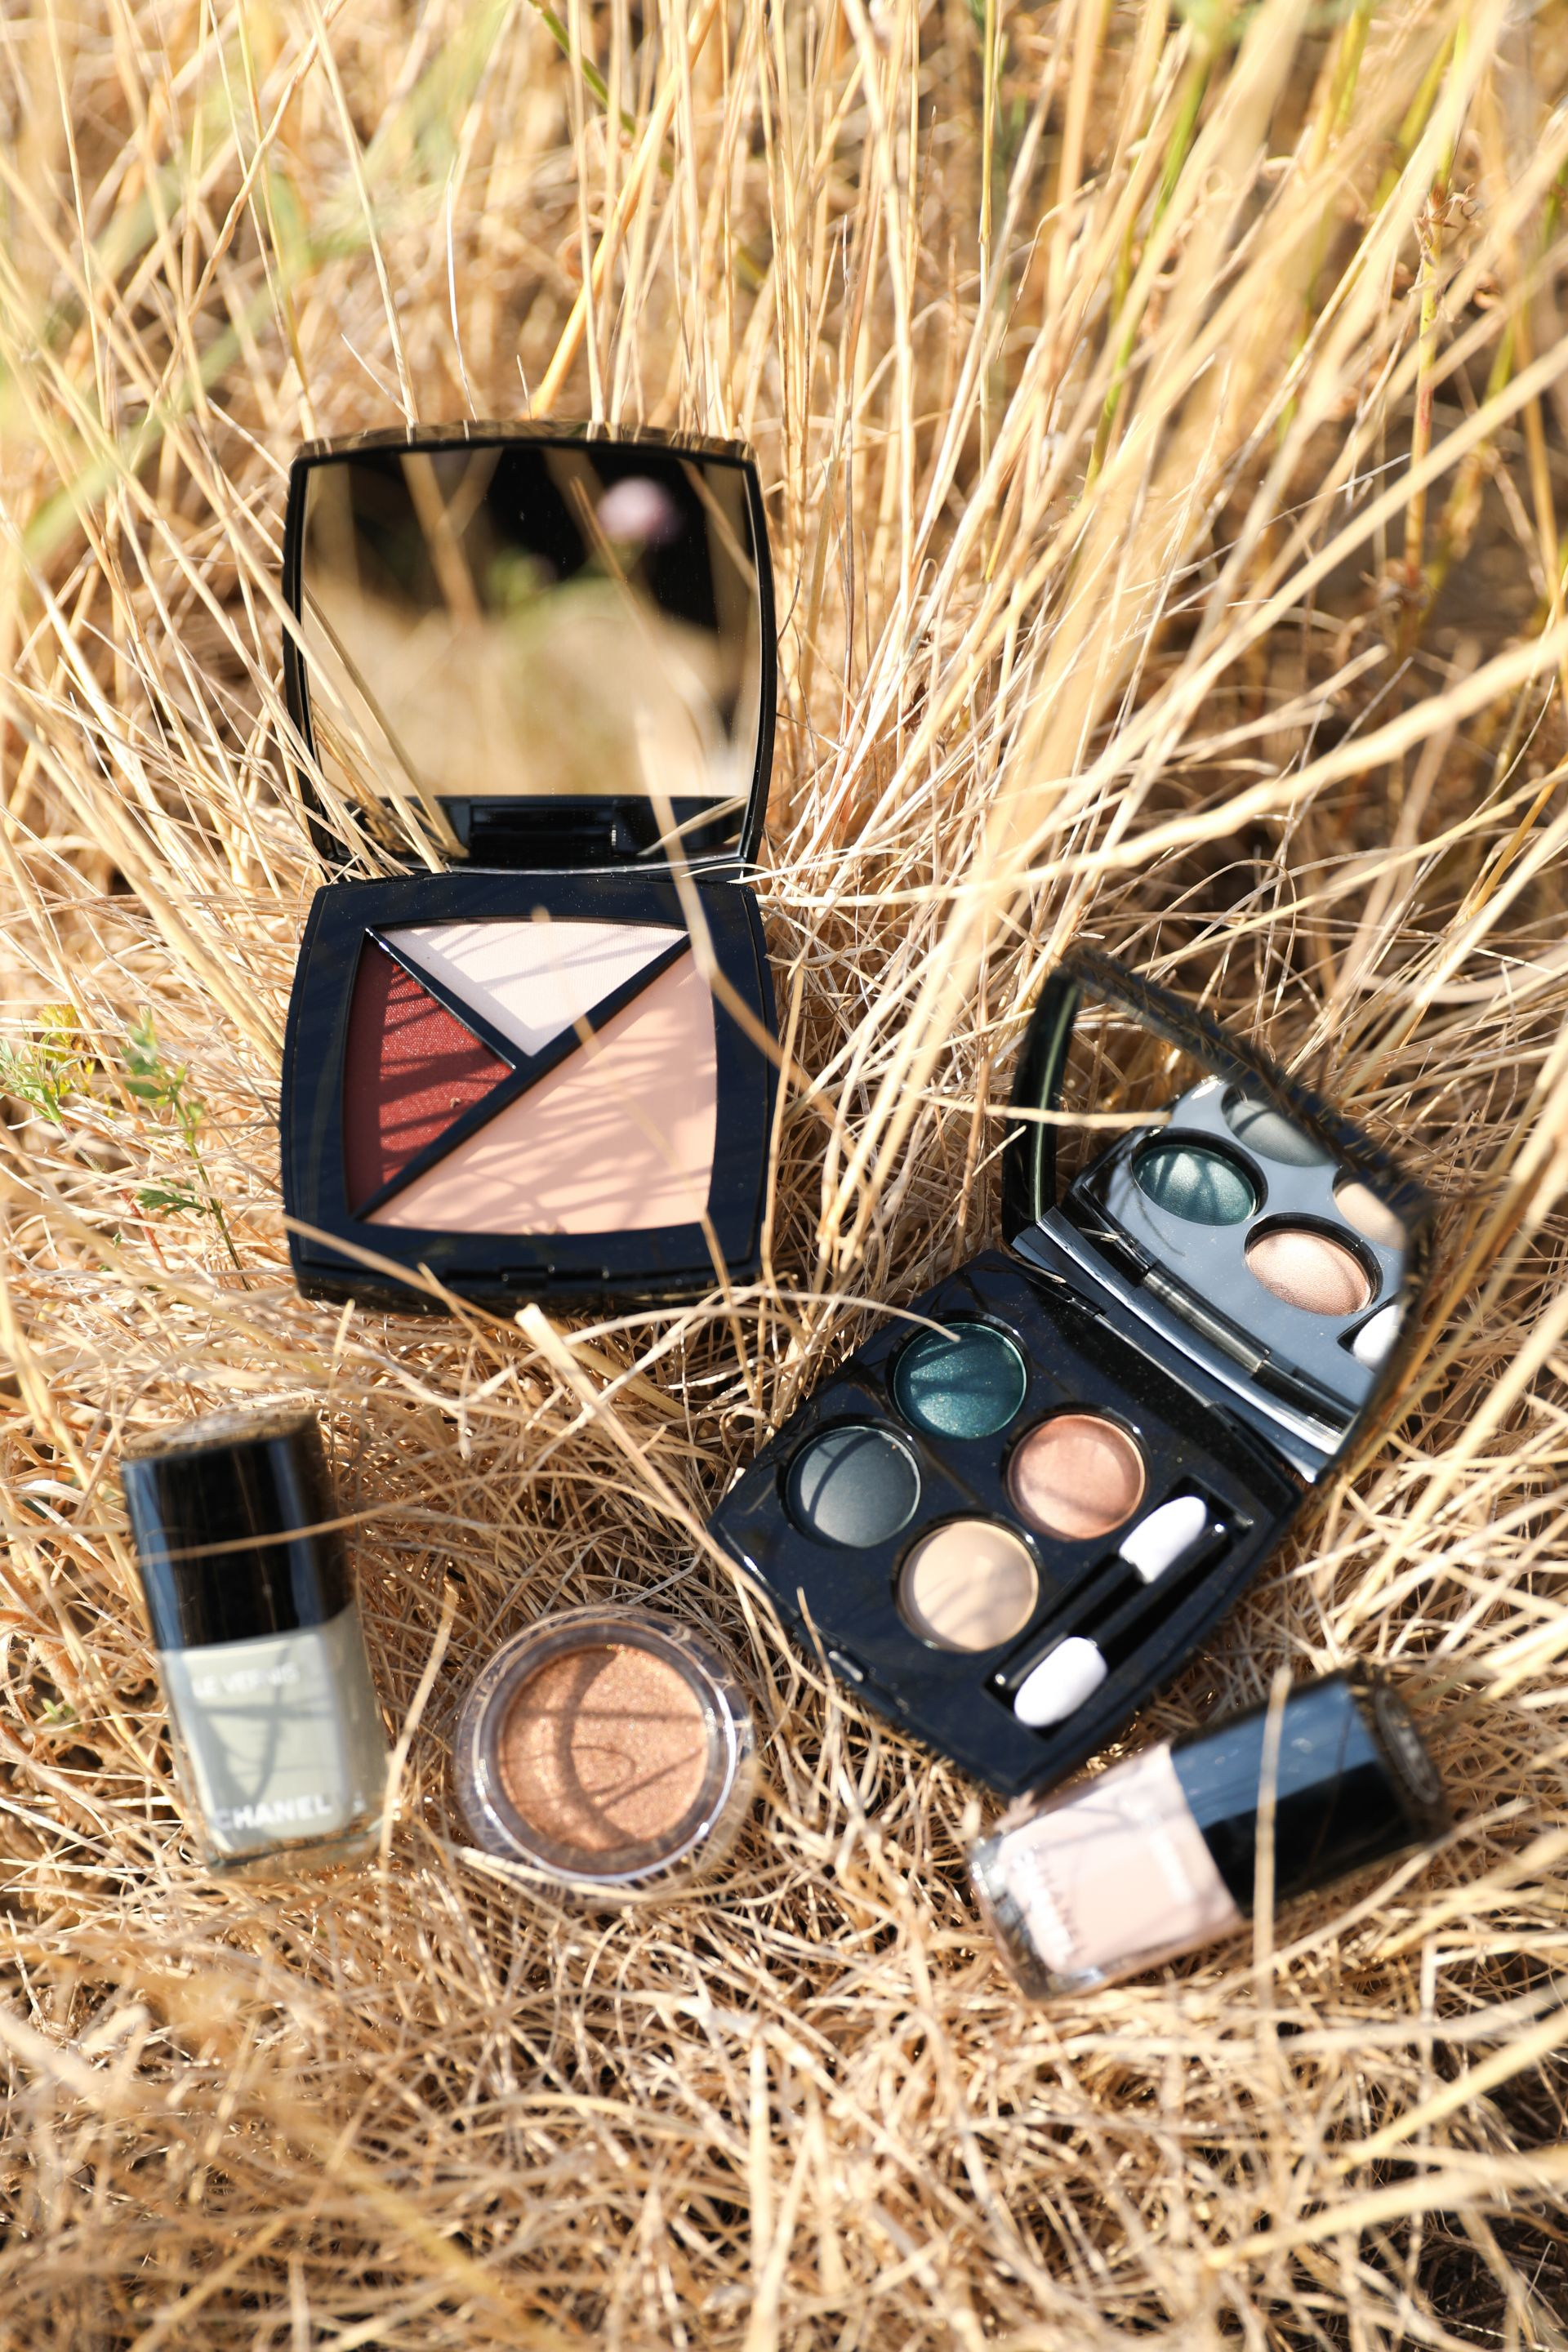 Chanel Travel Diary Collection Review Amelia Liana City Color Brow Quad Medium One Thing Chanels Consistently Been Good At Is Being Step Ahead Of The Game Im Always Excited To Test Out Their New Launches And Try